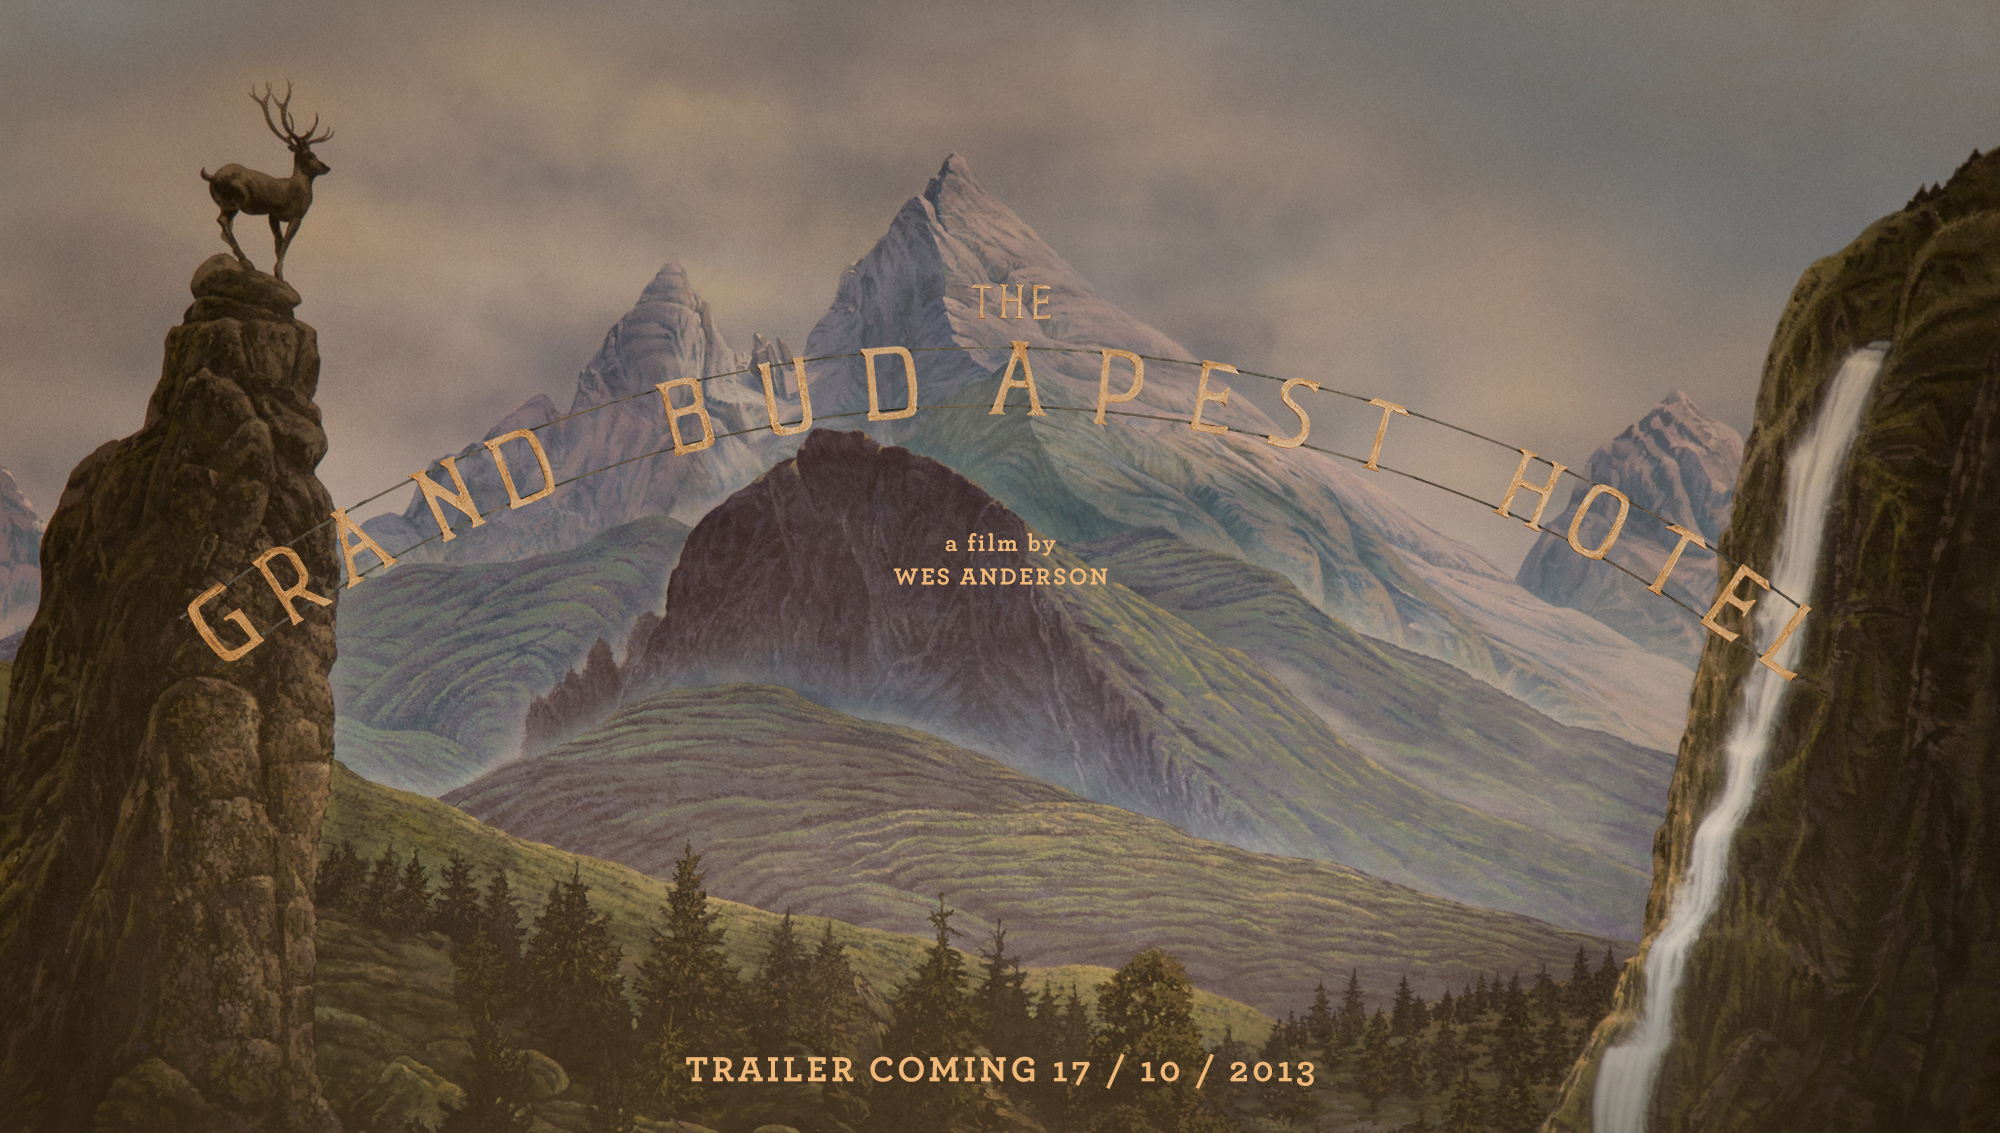 First poster for the grand budapest hotel advertises a for Hotel budapest